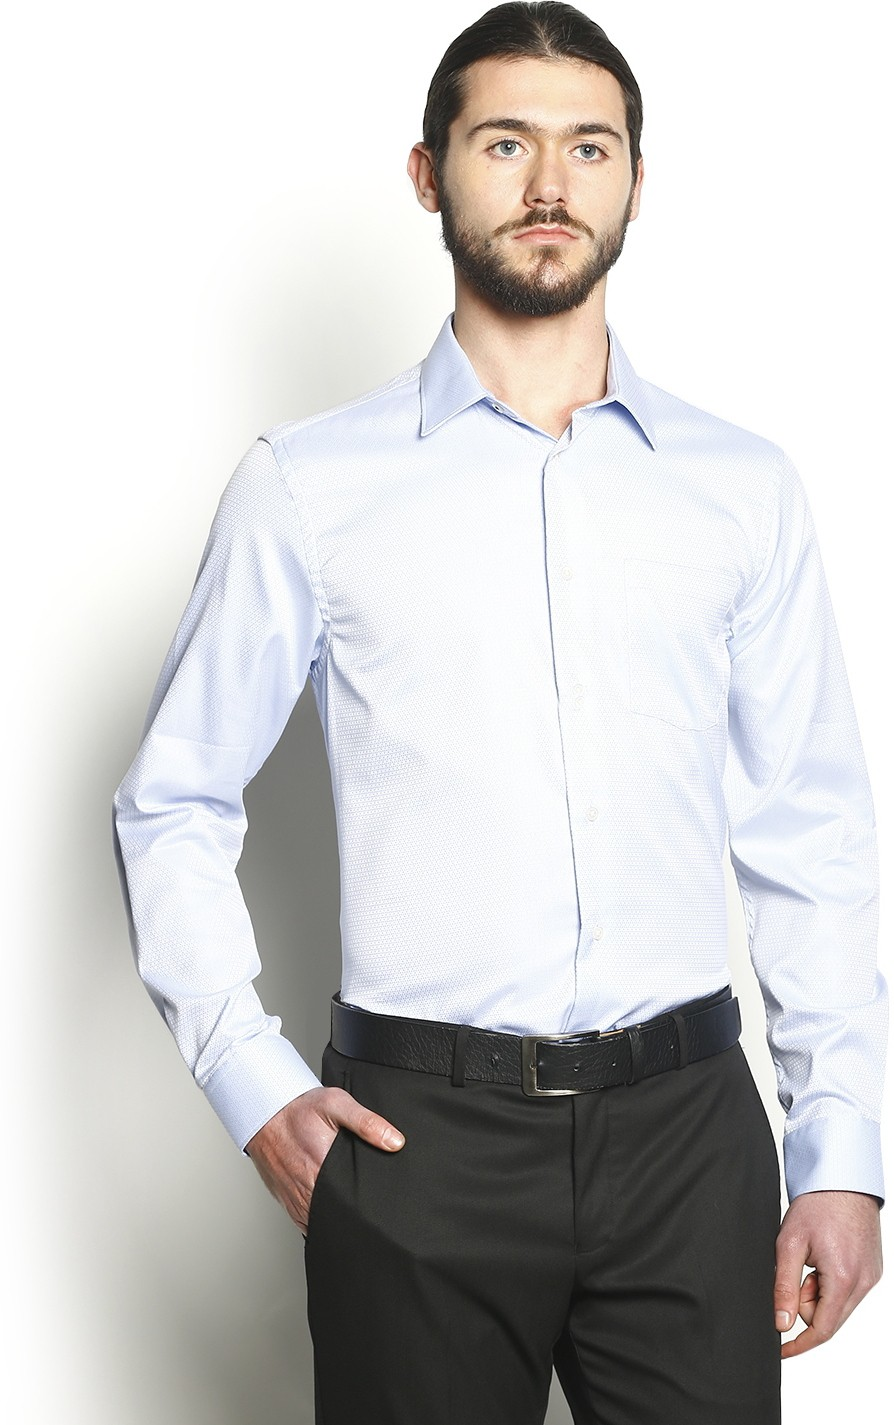 Deals - Moradabad - Blackberrys <br> Shirts, T-Shirts...<br> Category - clothing<br> Business - Flipkart.com